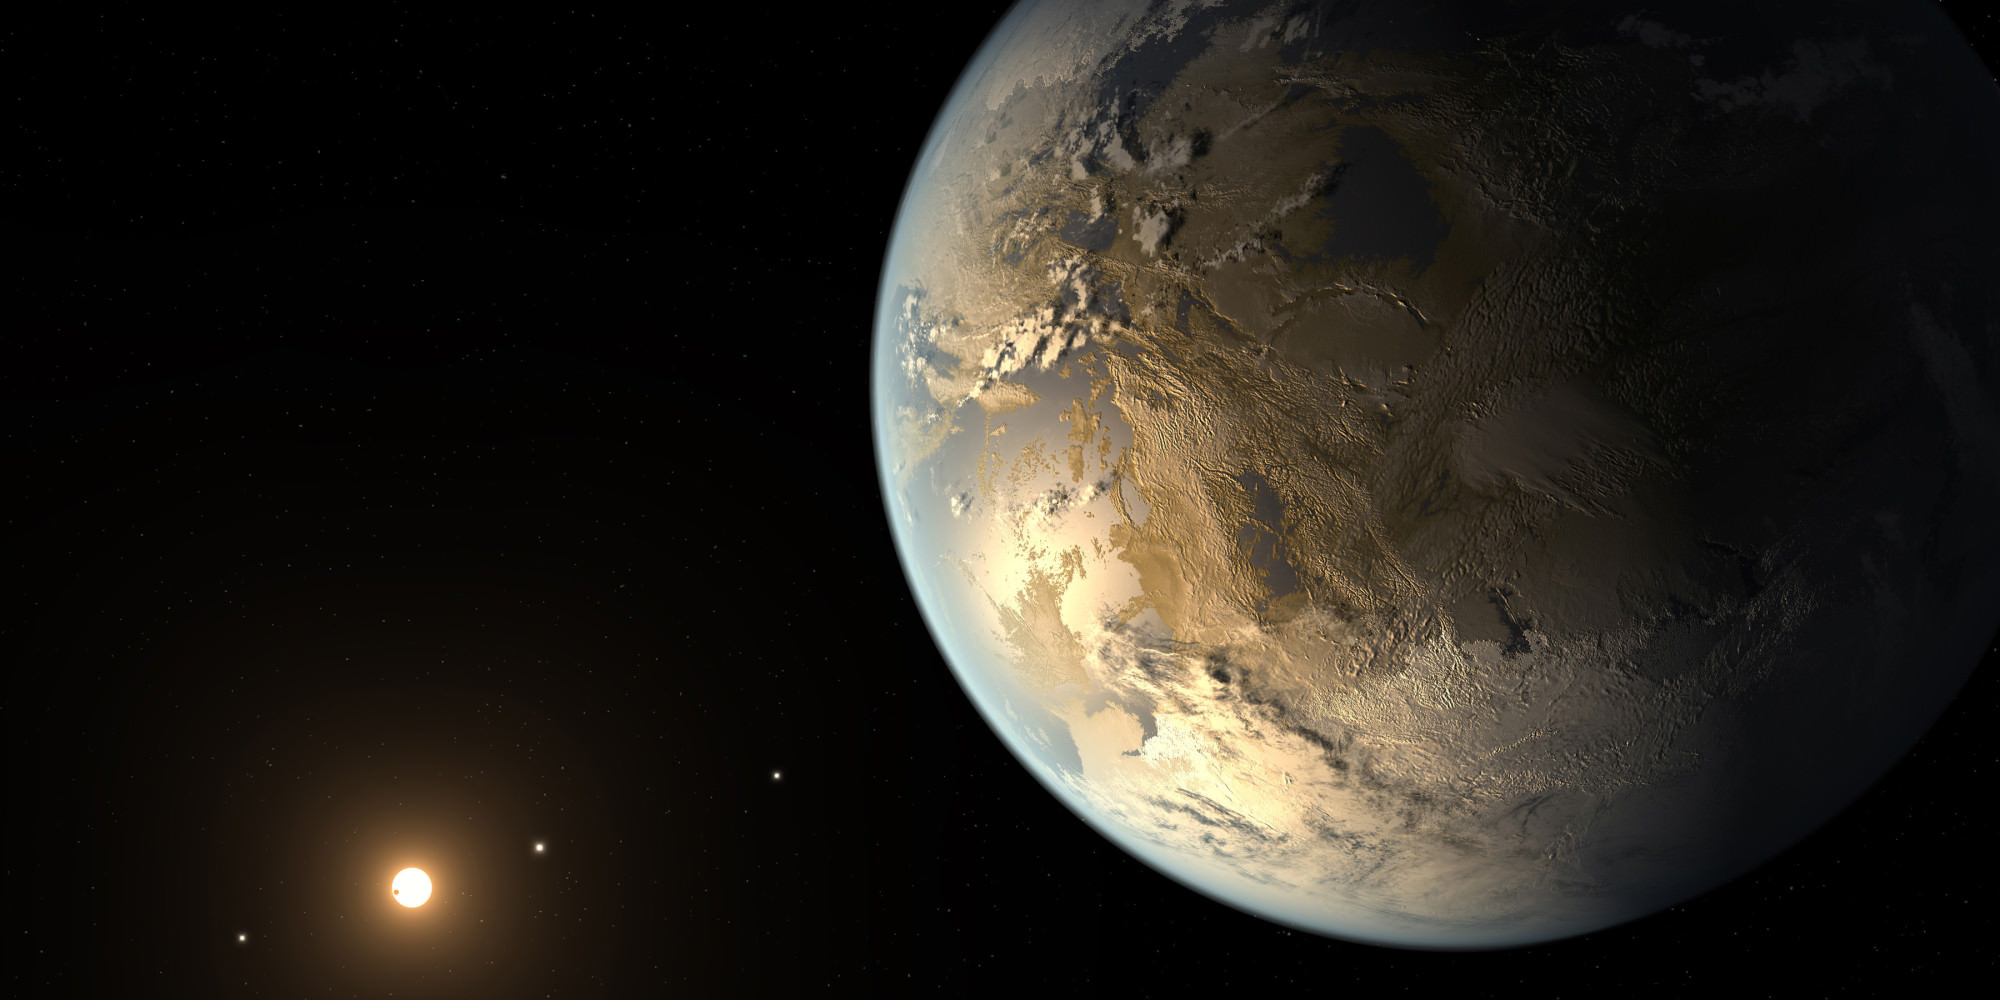 Illustration of Kepler-186f, a recently-discovered, possibly Earthlike exoplanet that could be a host to life. (NASA Ames, SETI Institute, JPL-Caltech, T. Pyle)